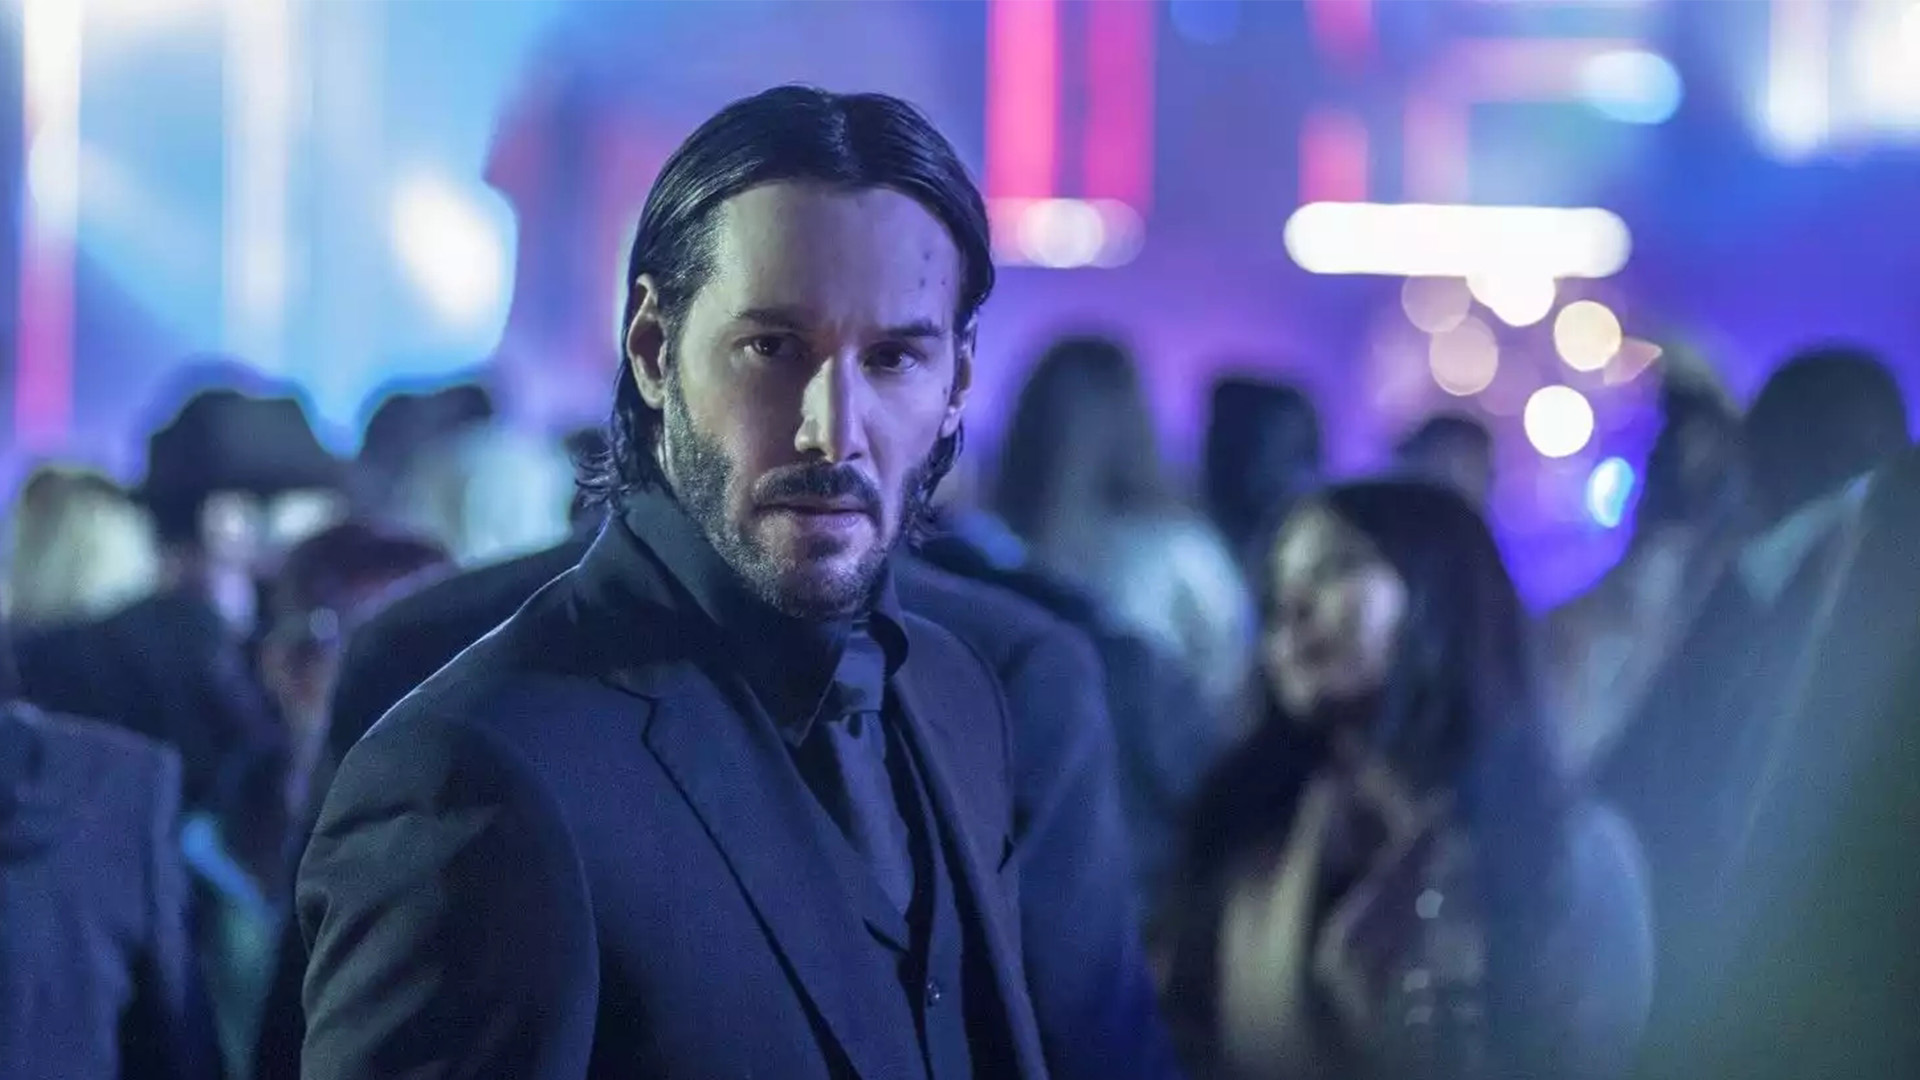 John Wick Chapter 3 gets its first synopsis and promotional poster screenshot